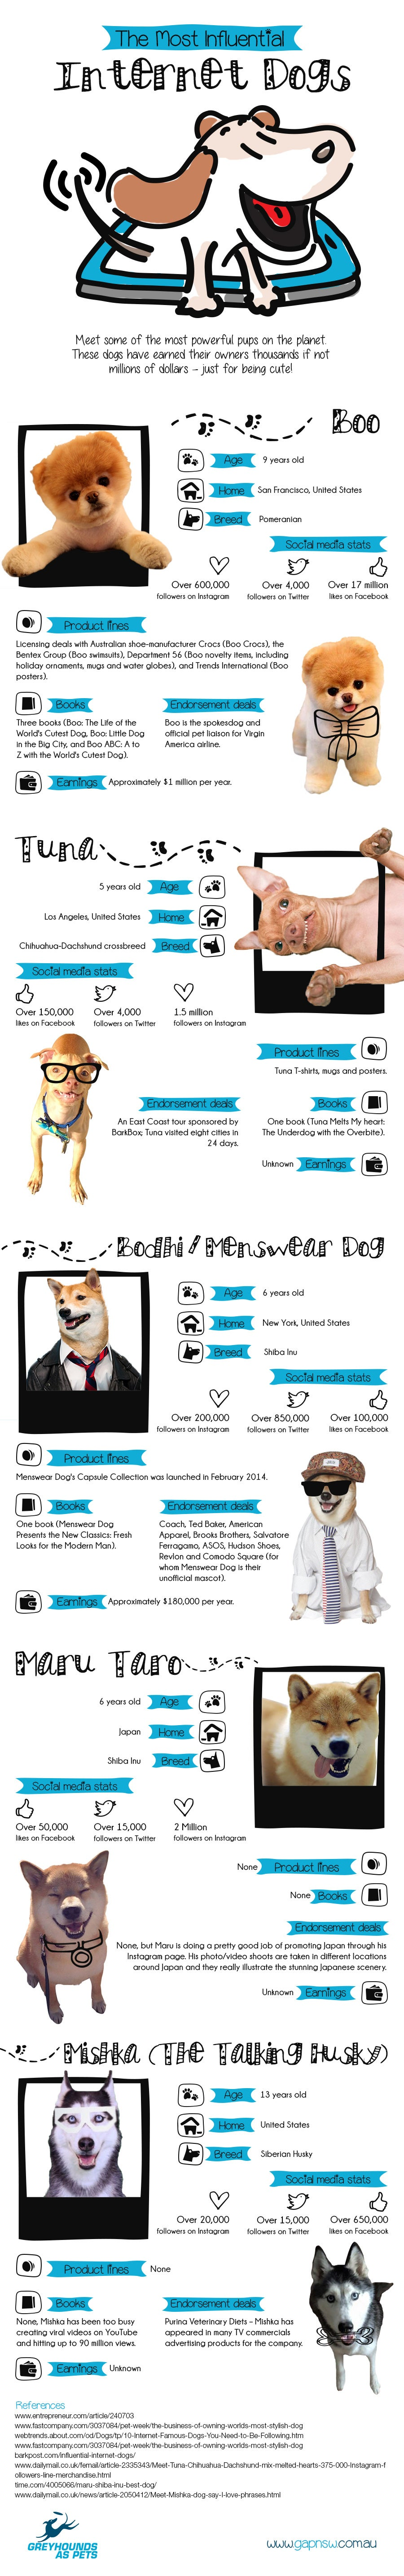 Influential dogs on internet (Infographic)